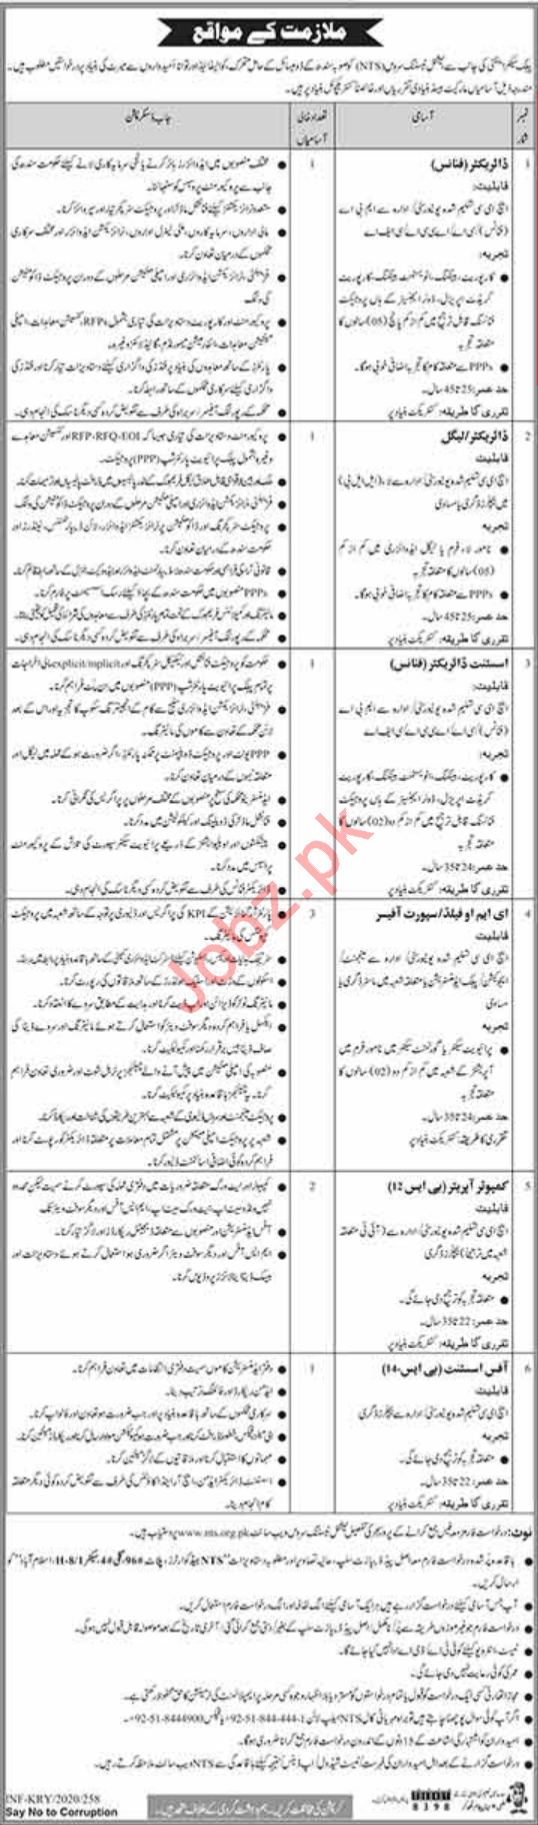 Public Sector Organization Jobs 2020 in Karachi via NTS